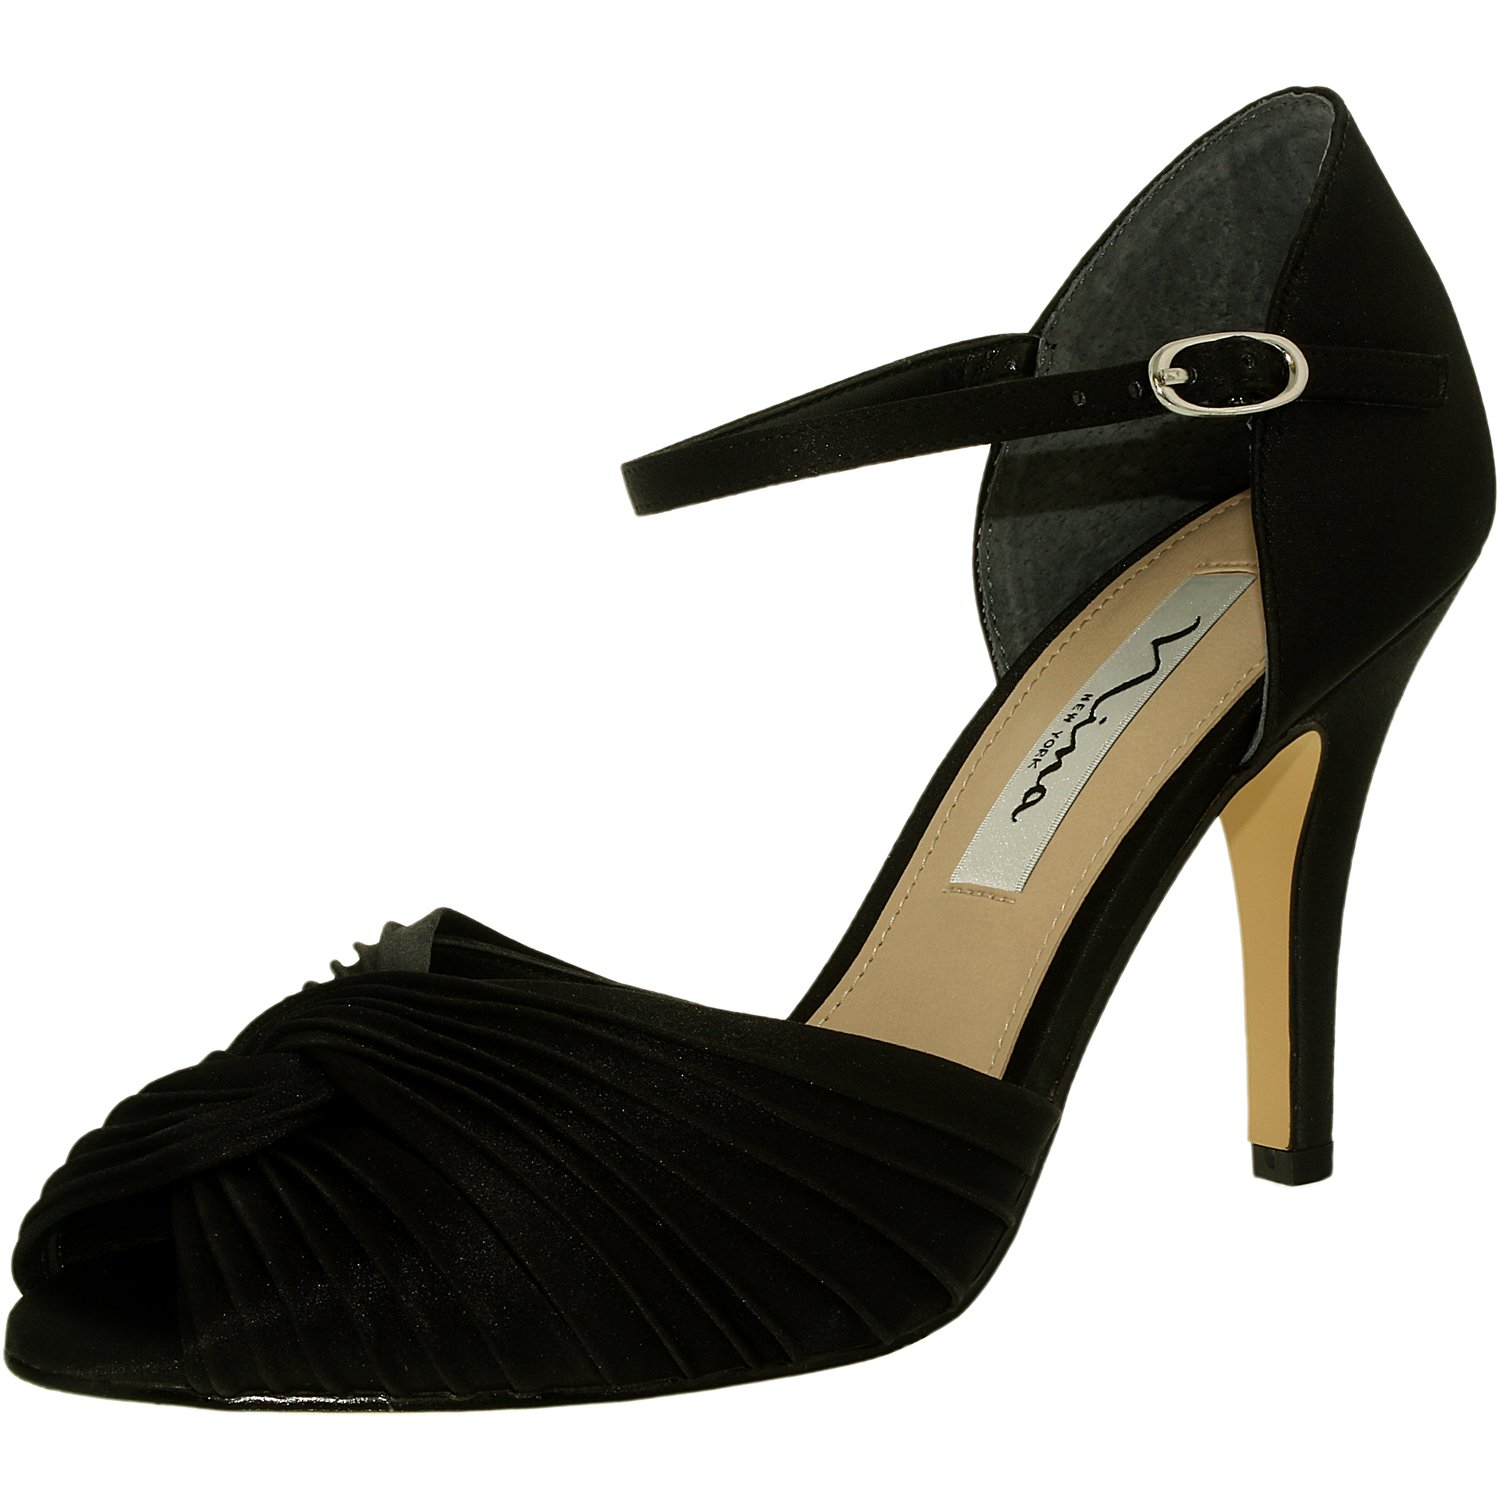 Nina Women's Ruby-Ls Satin Black Luster Ankle-High Pump - 8.5M